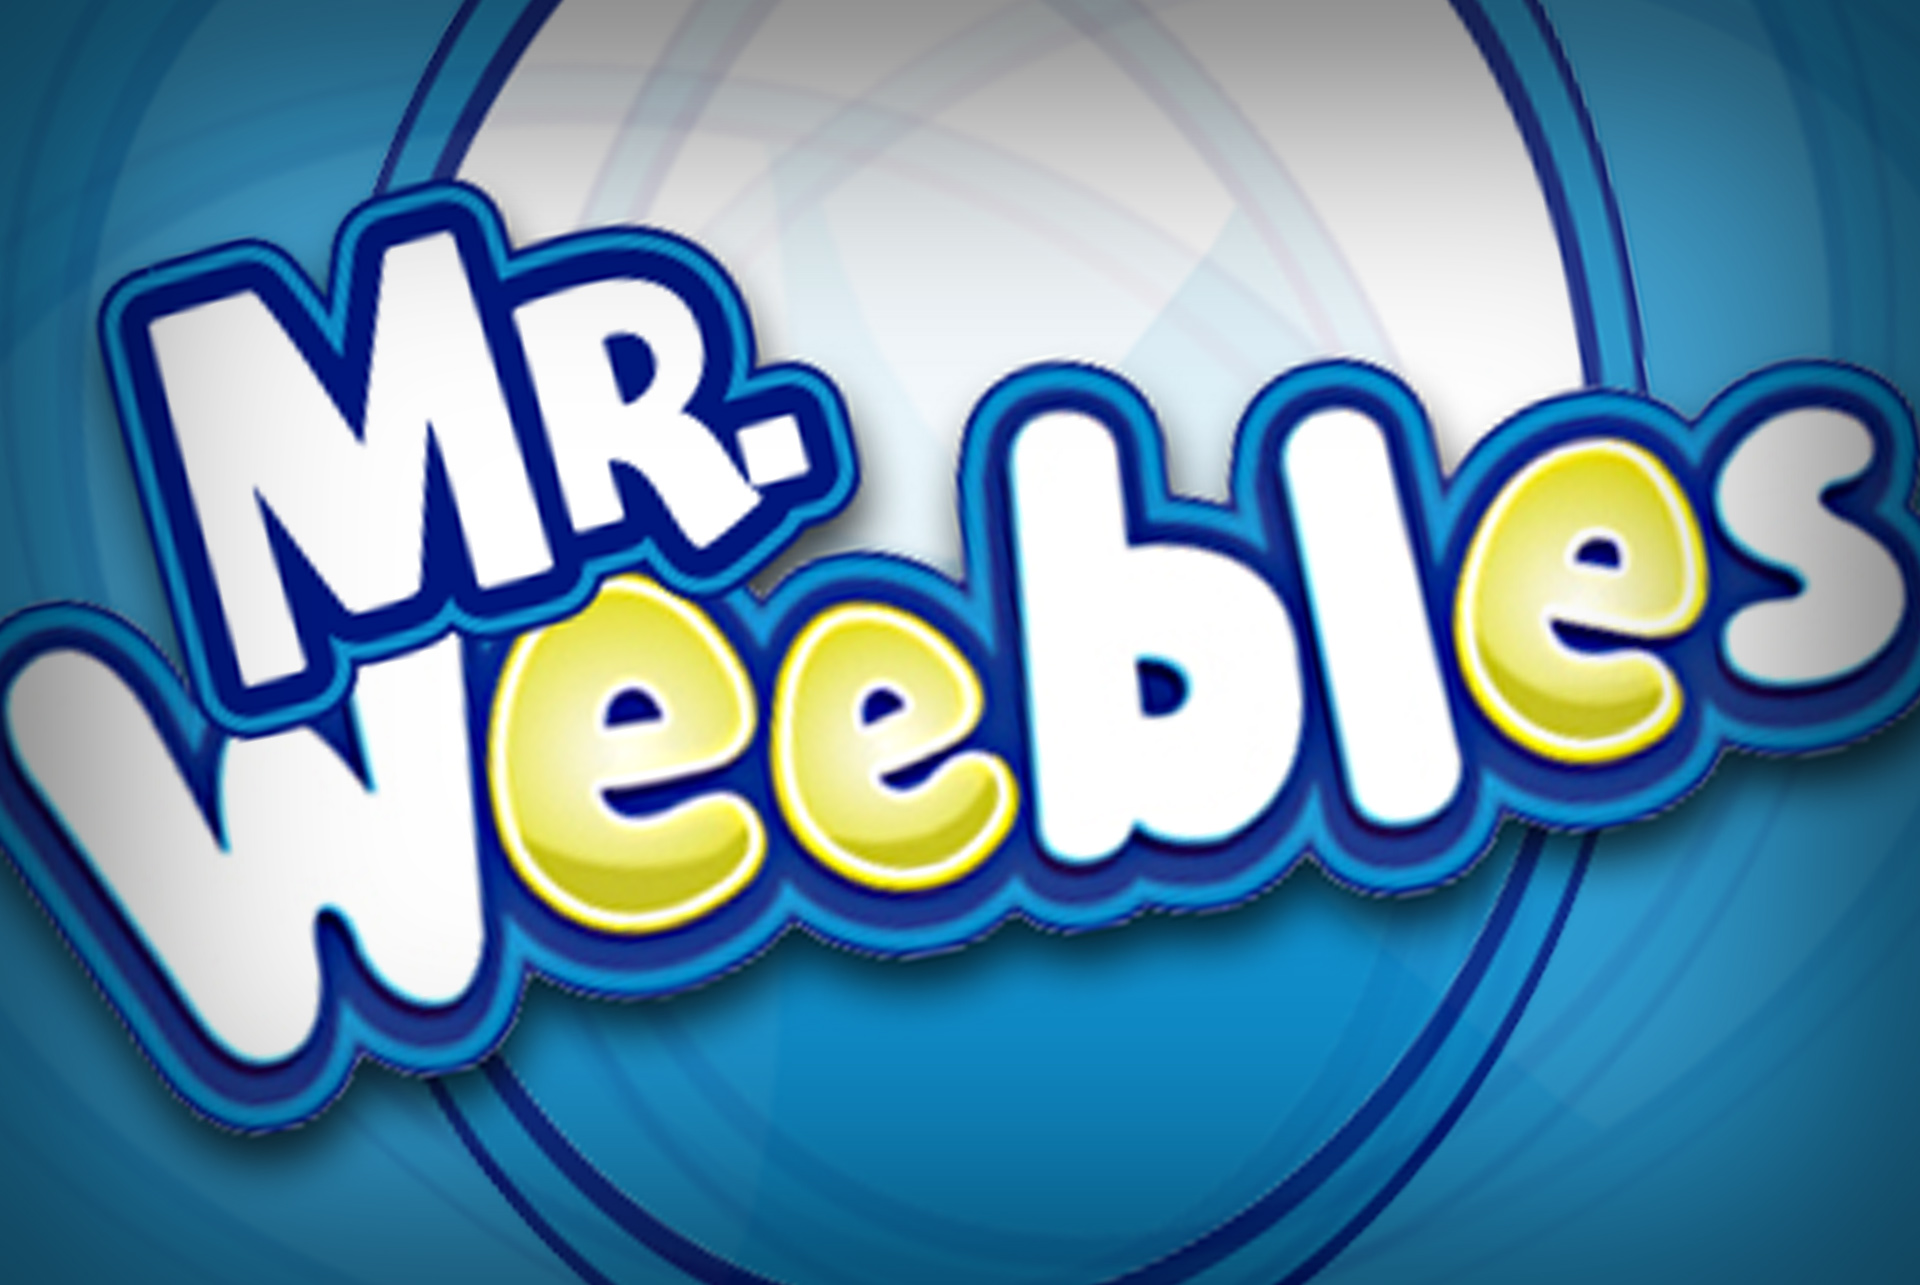 Mr. Weeble™